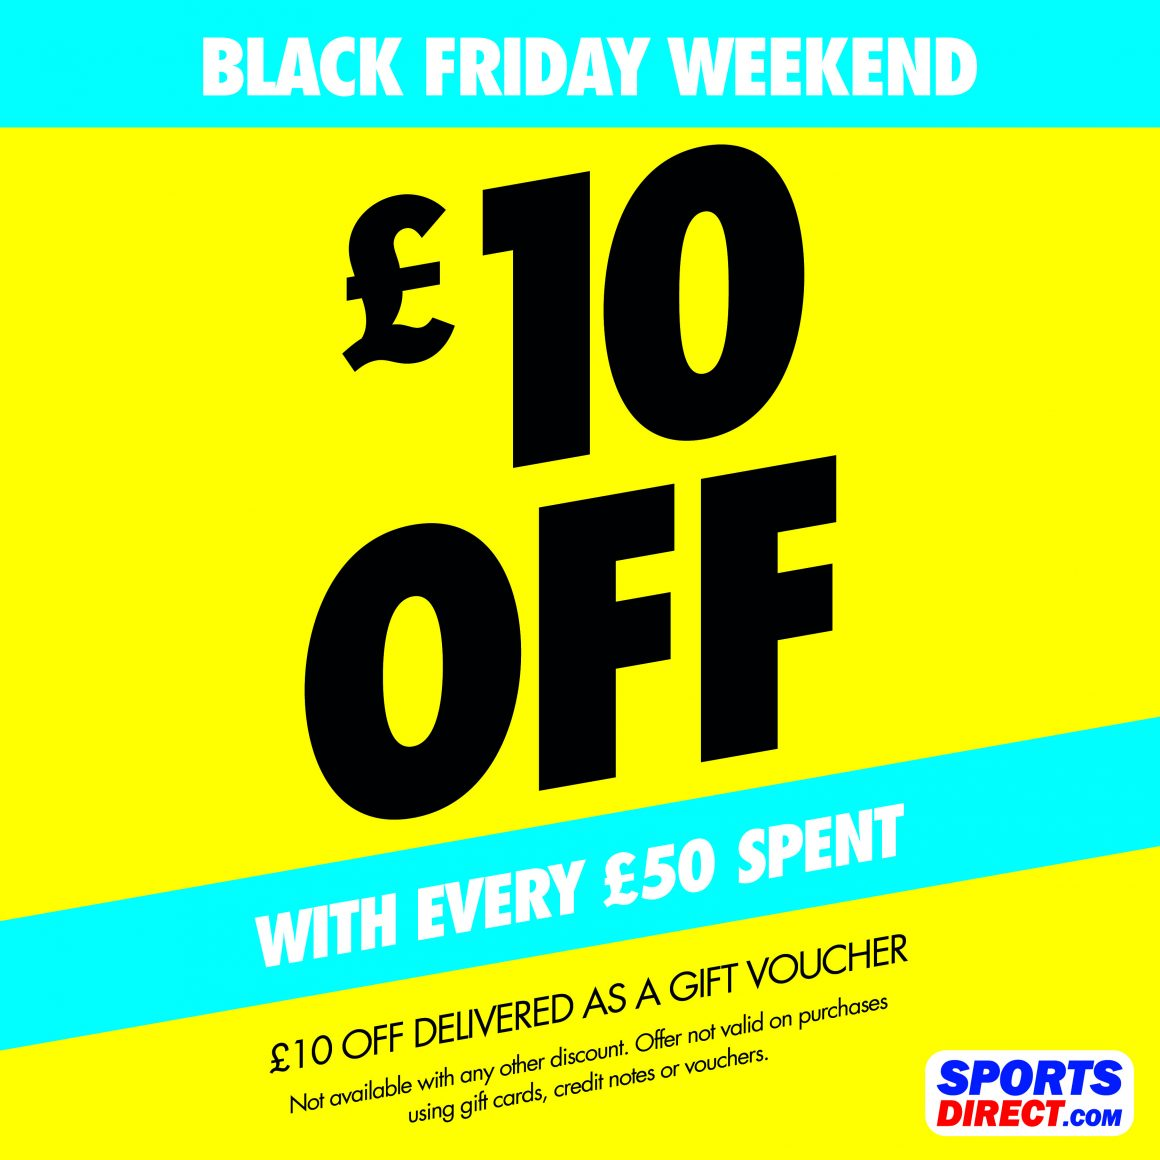 £10 VOUCHER AT SPORTS DIRECT WHEN YOU SPEND £50 OR MORE